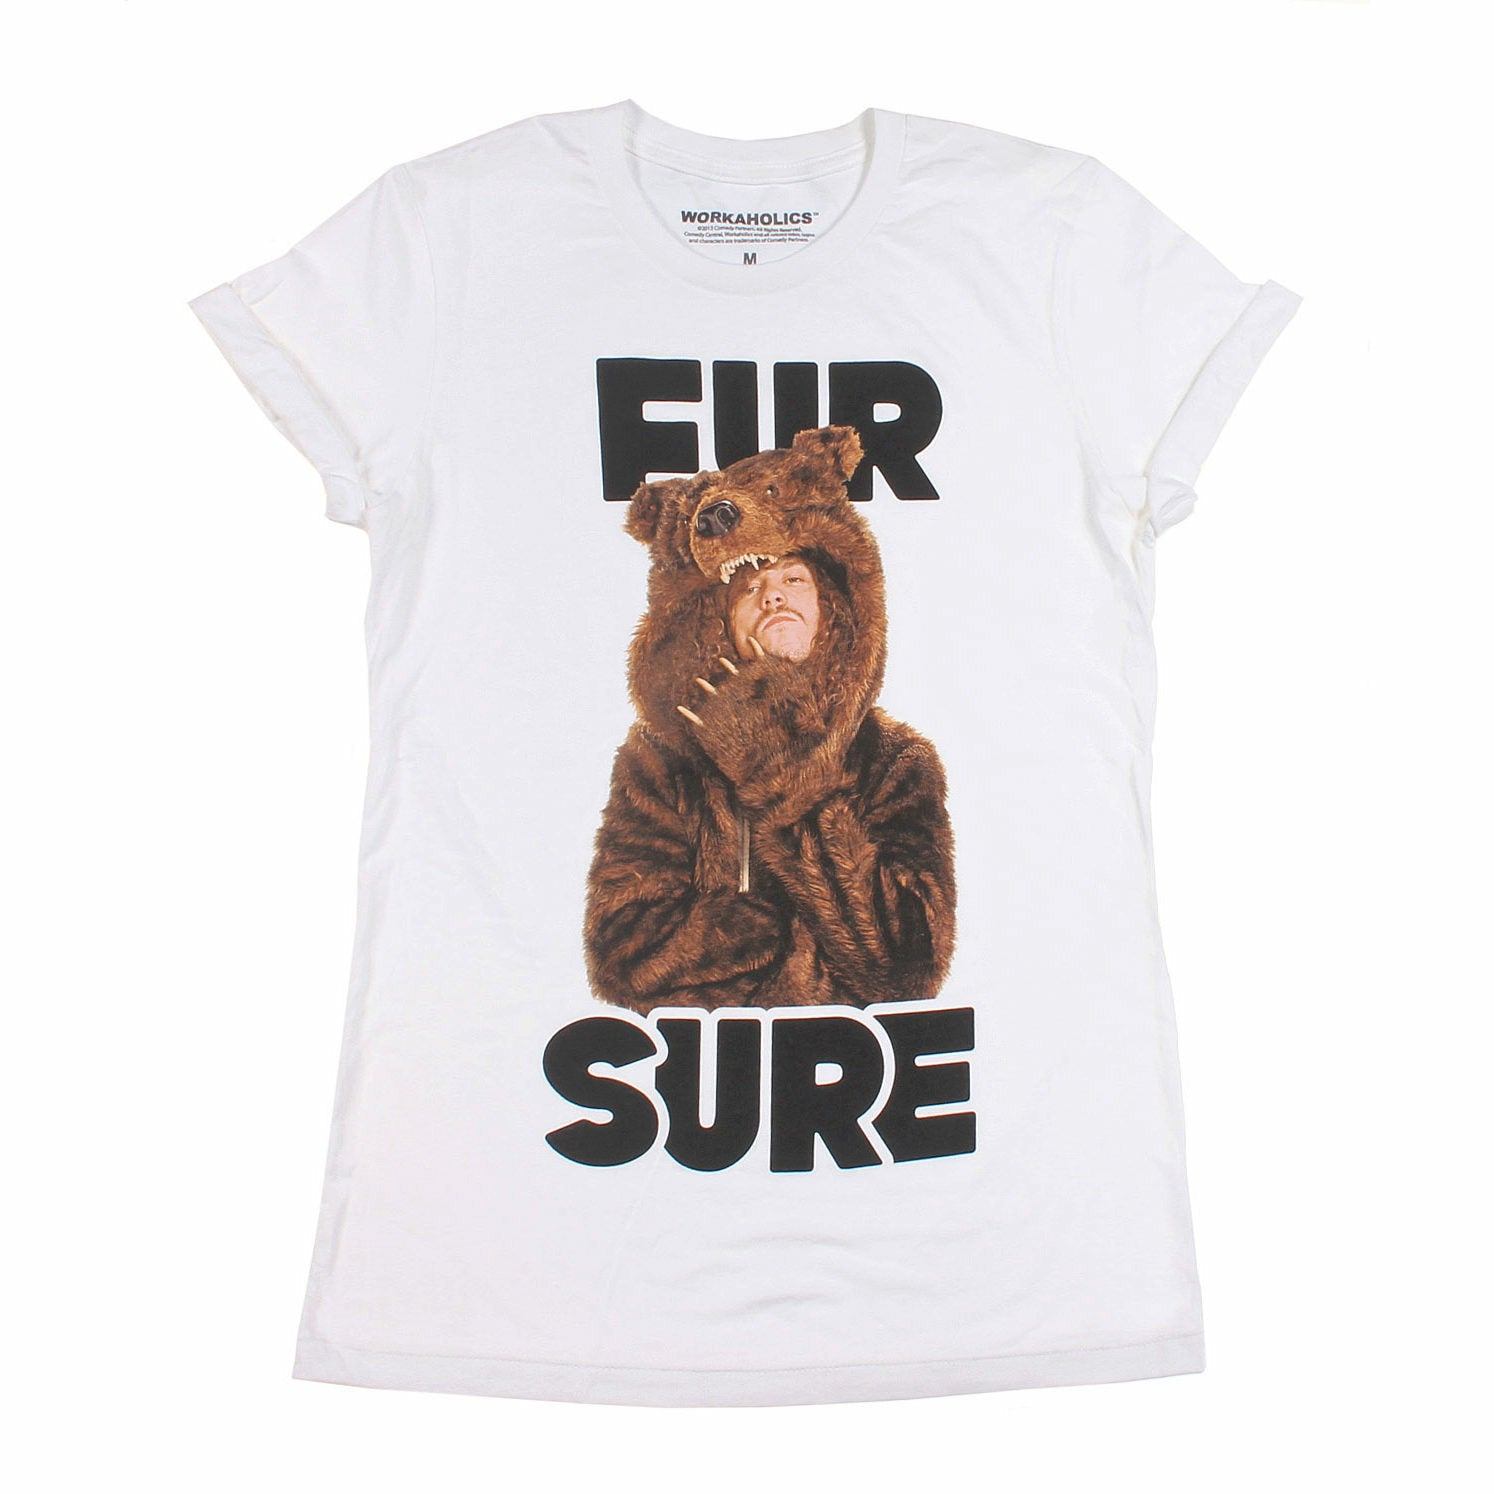 Workaholics Fur Sure Rolled Sleeve Boyfriend Juniors T-Shirt